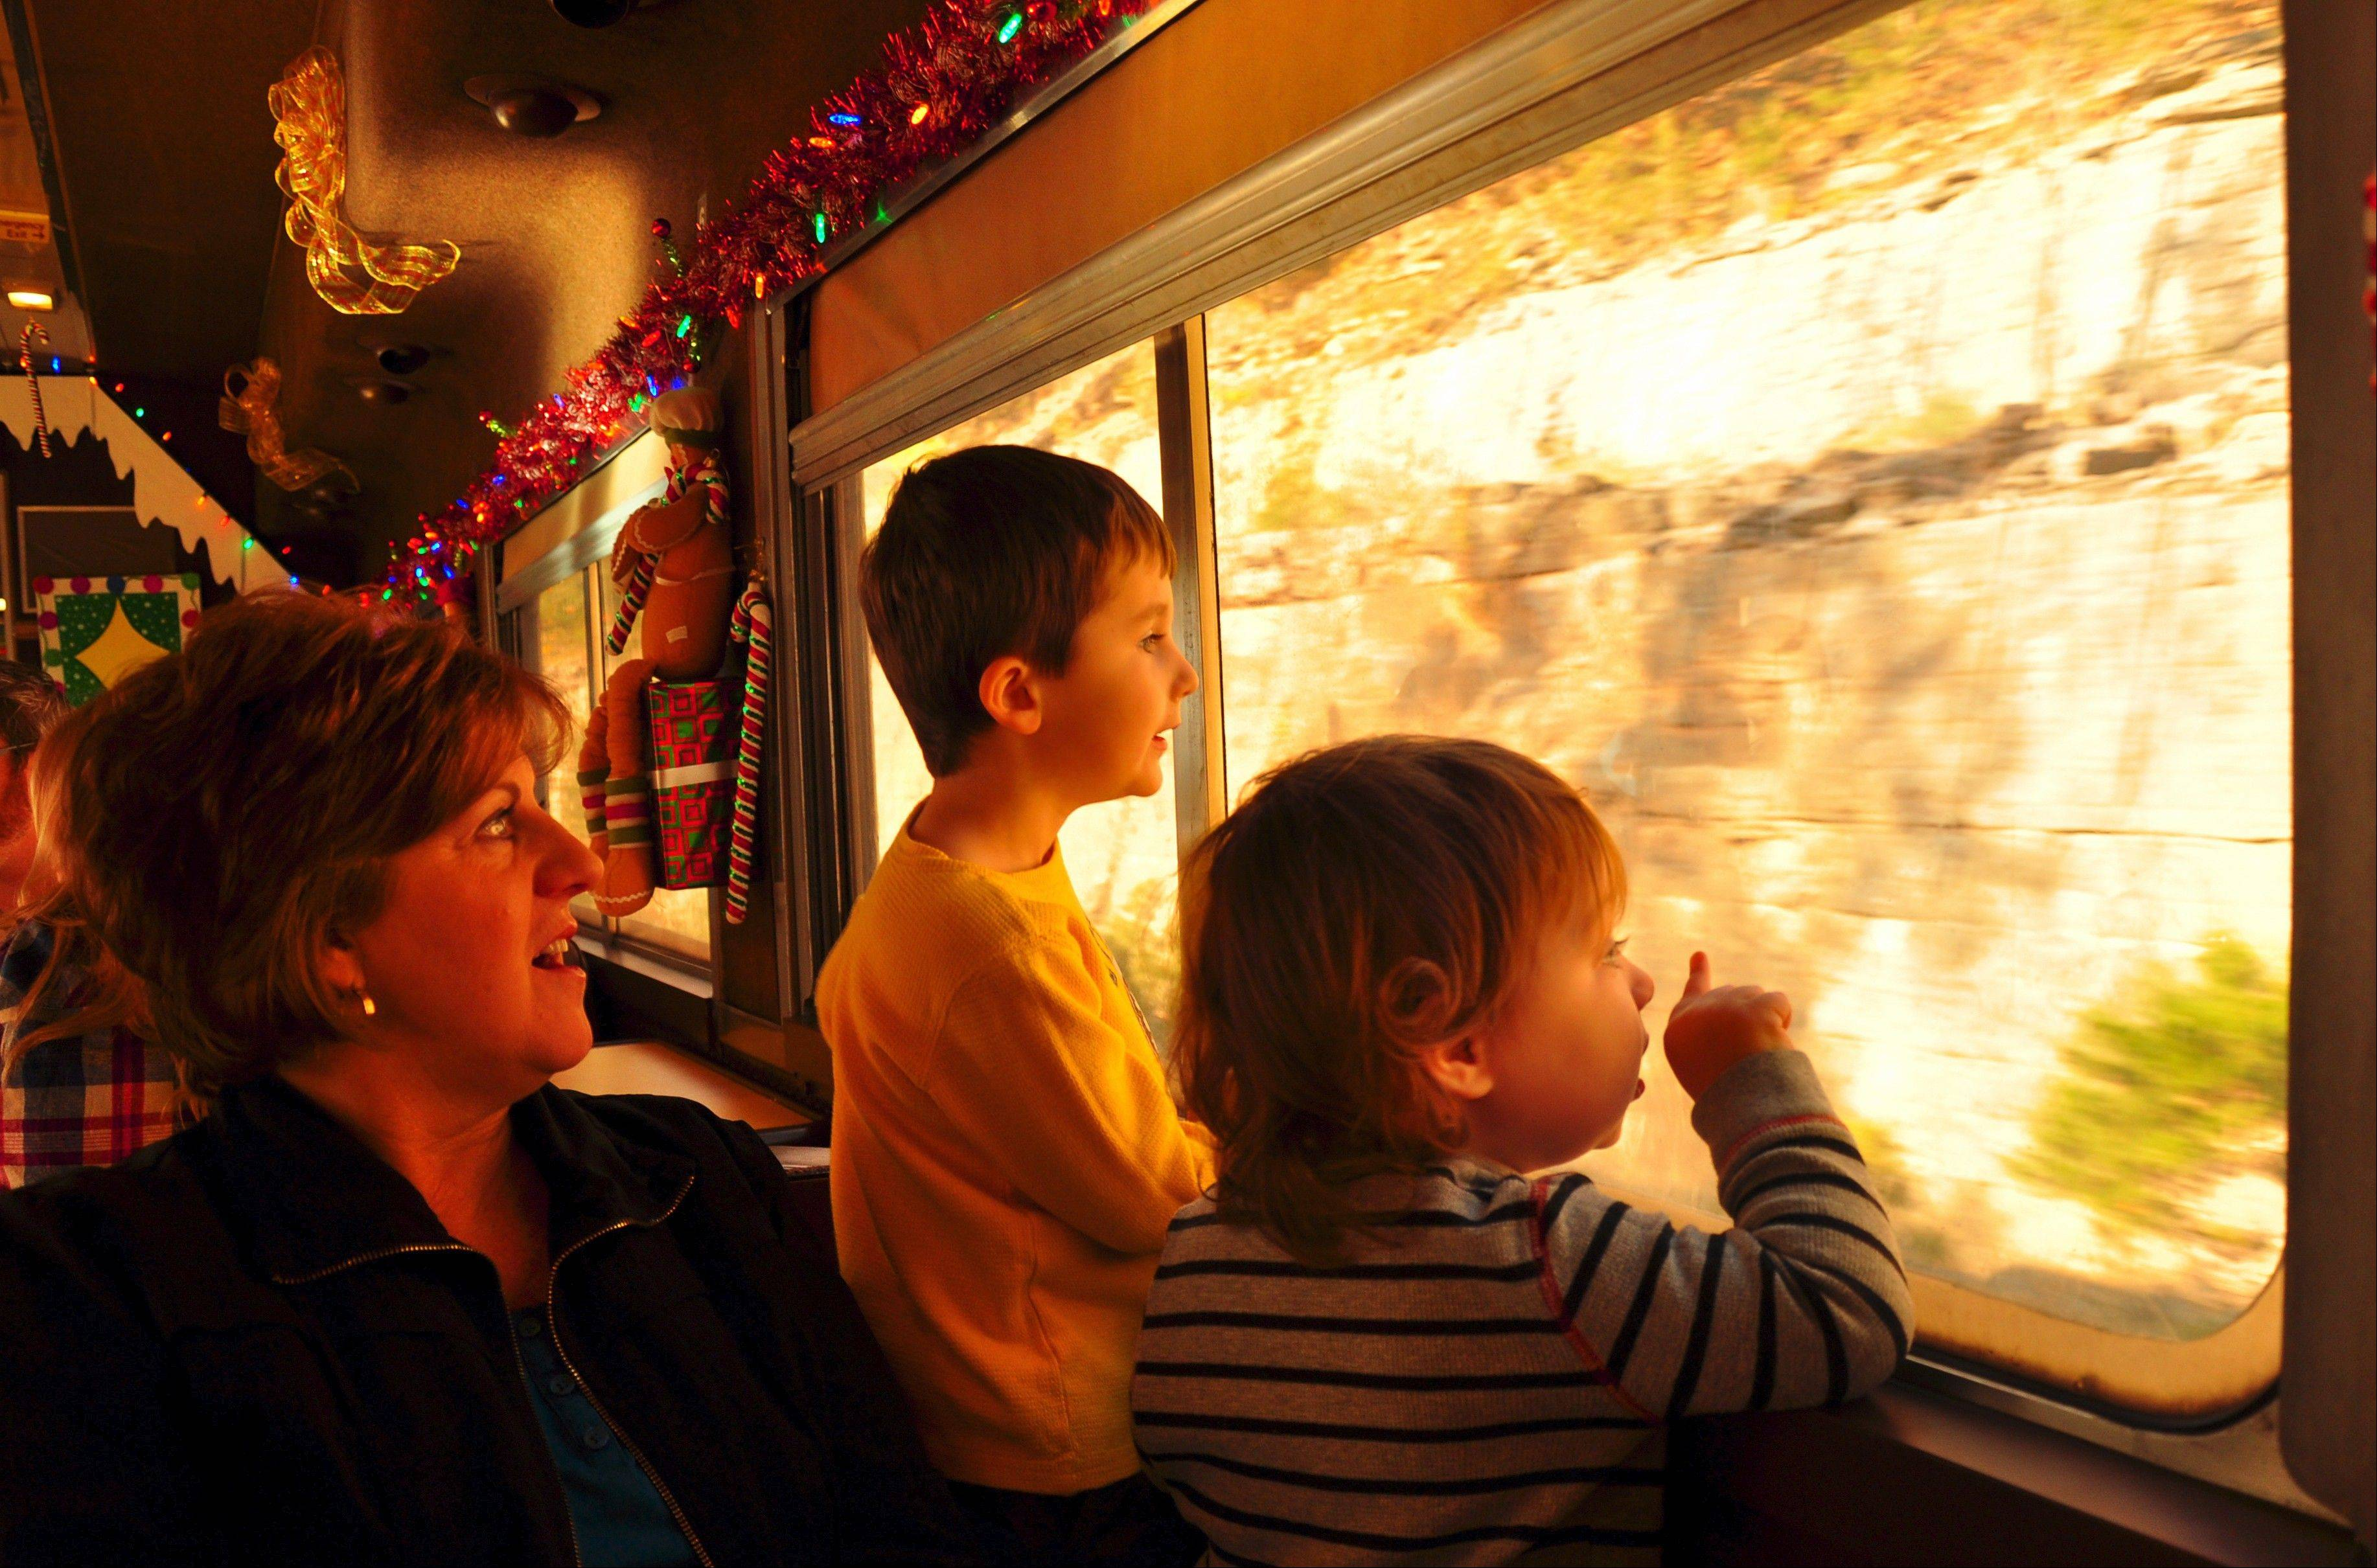 Kathy Mathes of Jonesboro, Ark., watches over grandchildren Jack Keith and Glendon Scribner as they check out the scenery from a vintage coach car on the Branson Scenic Railway.